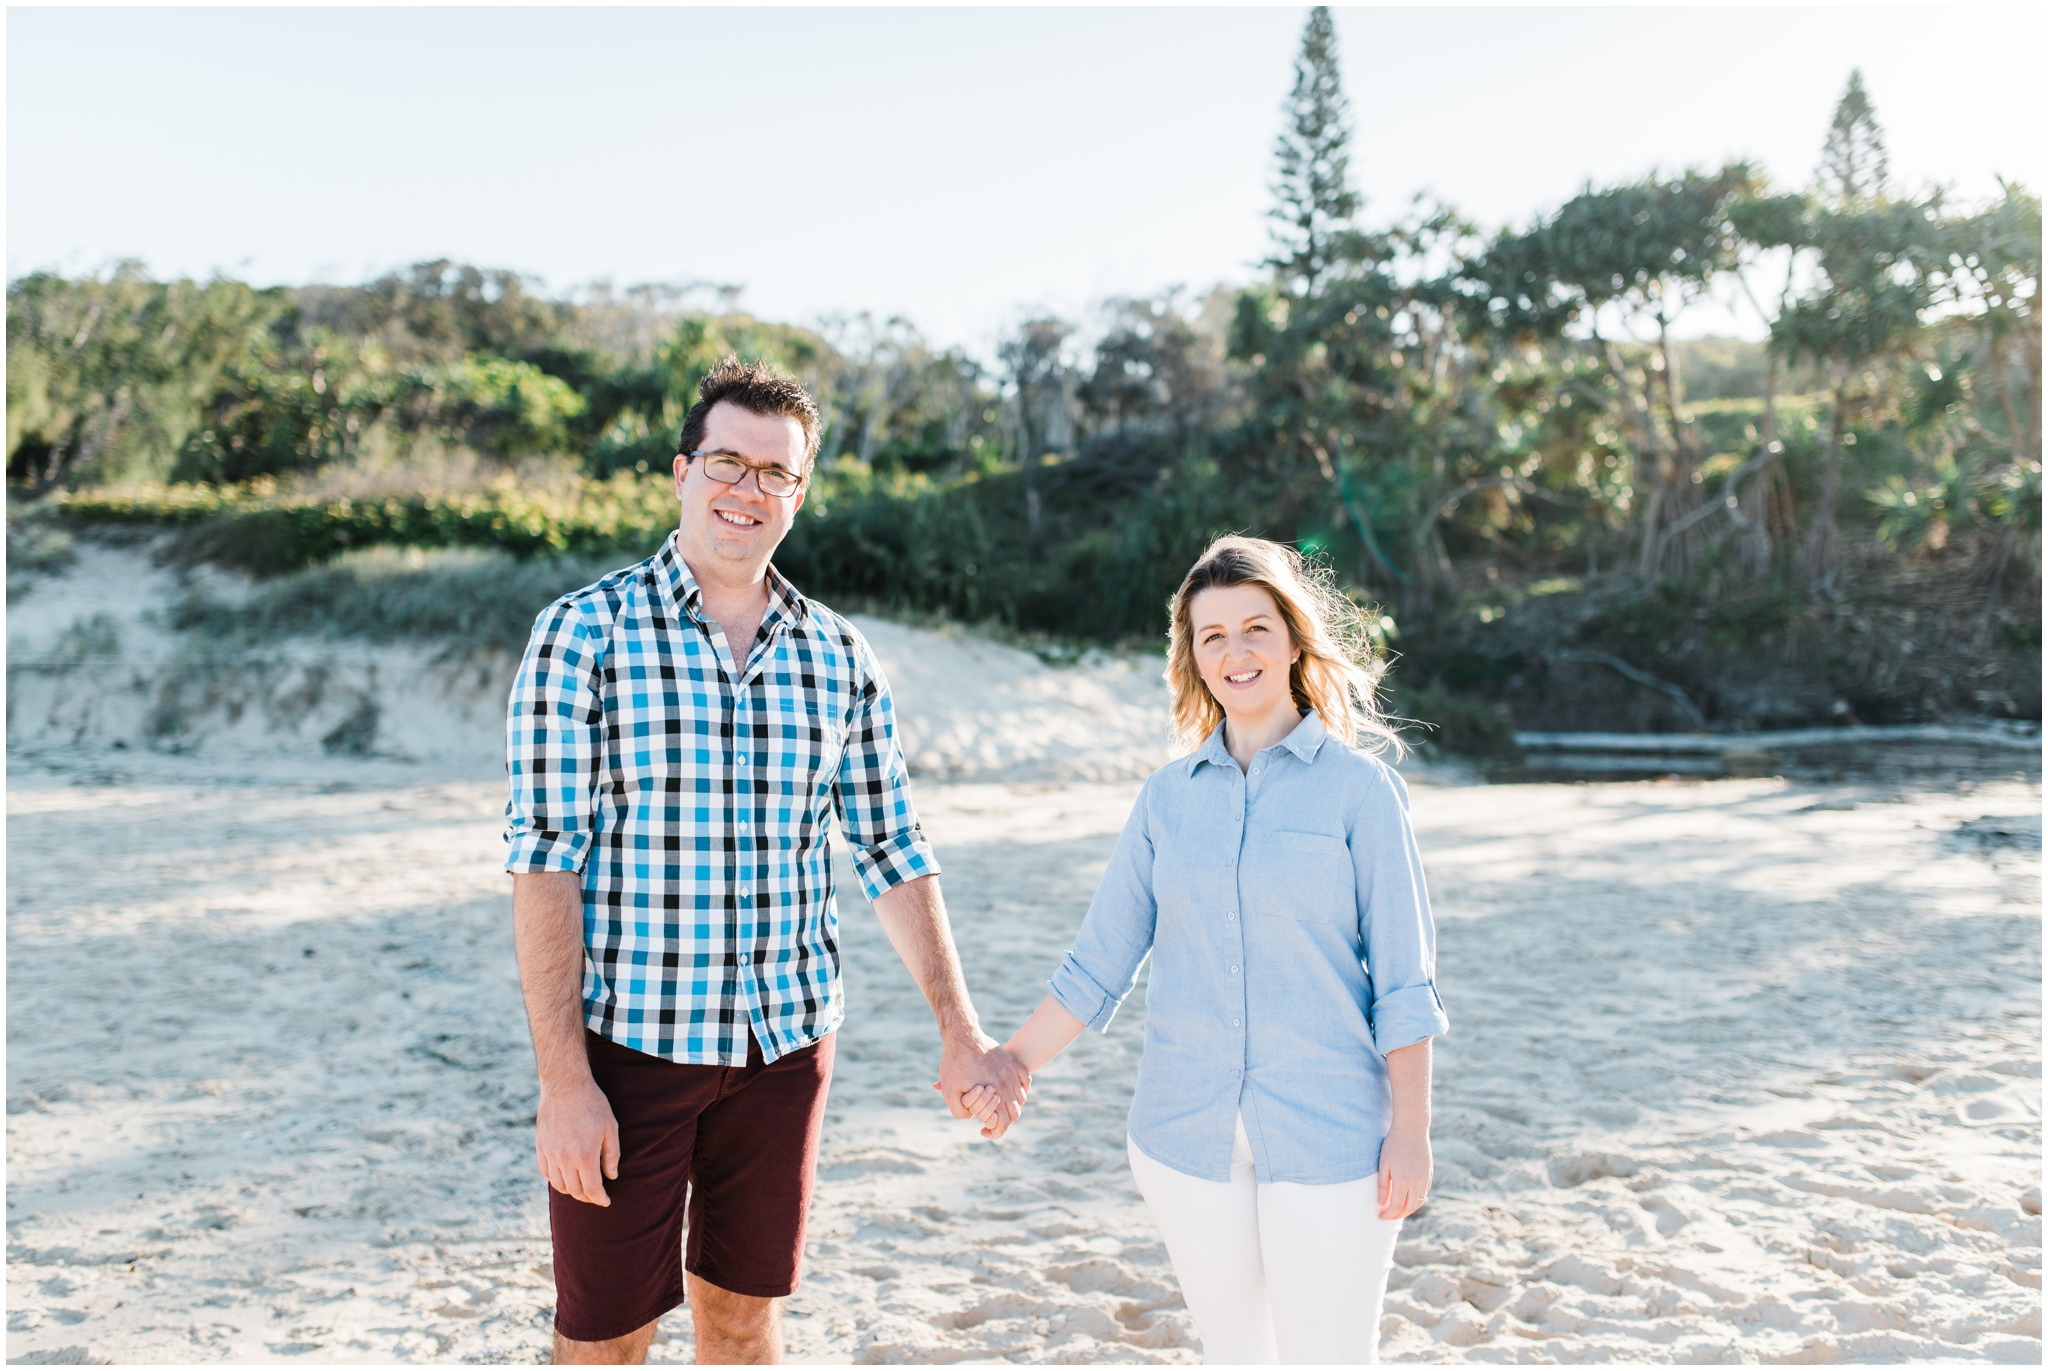 Point-Arkwright-Sunshine-Coast-Engagement-Shoot1.jpg